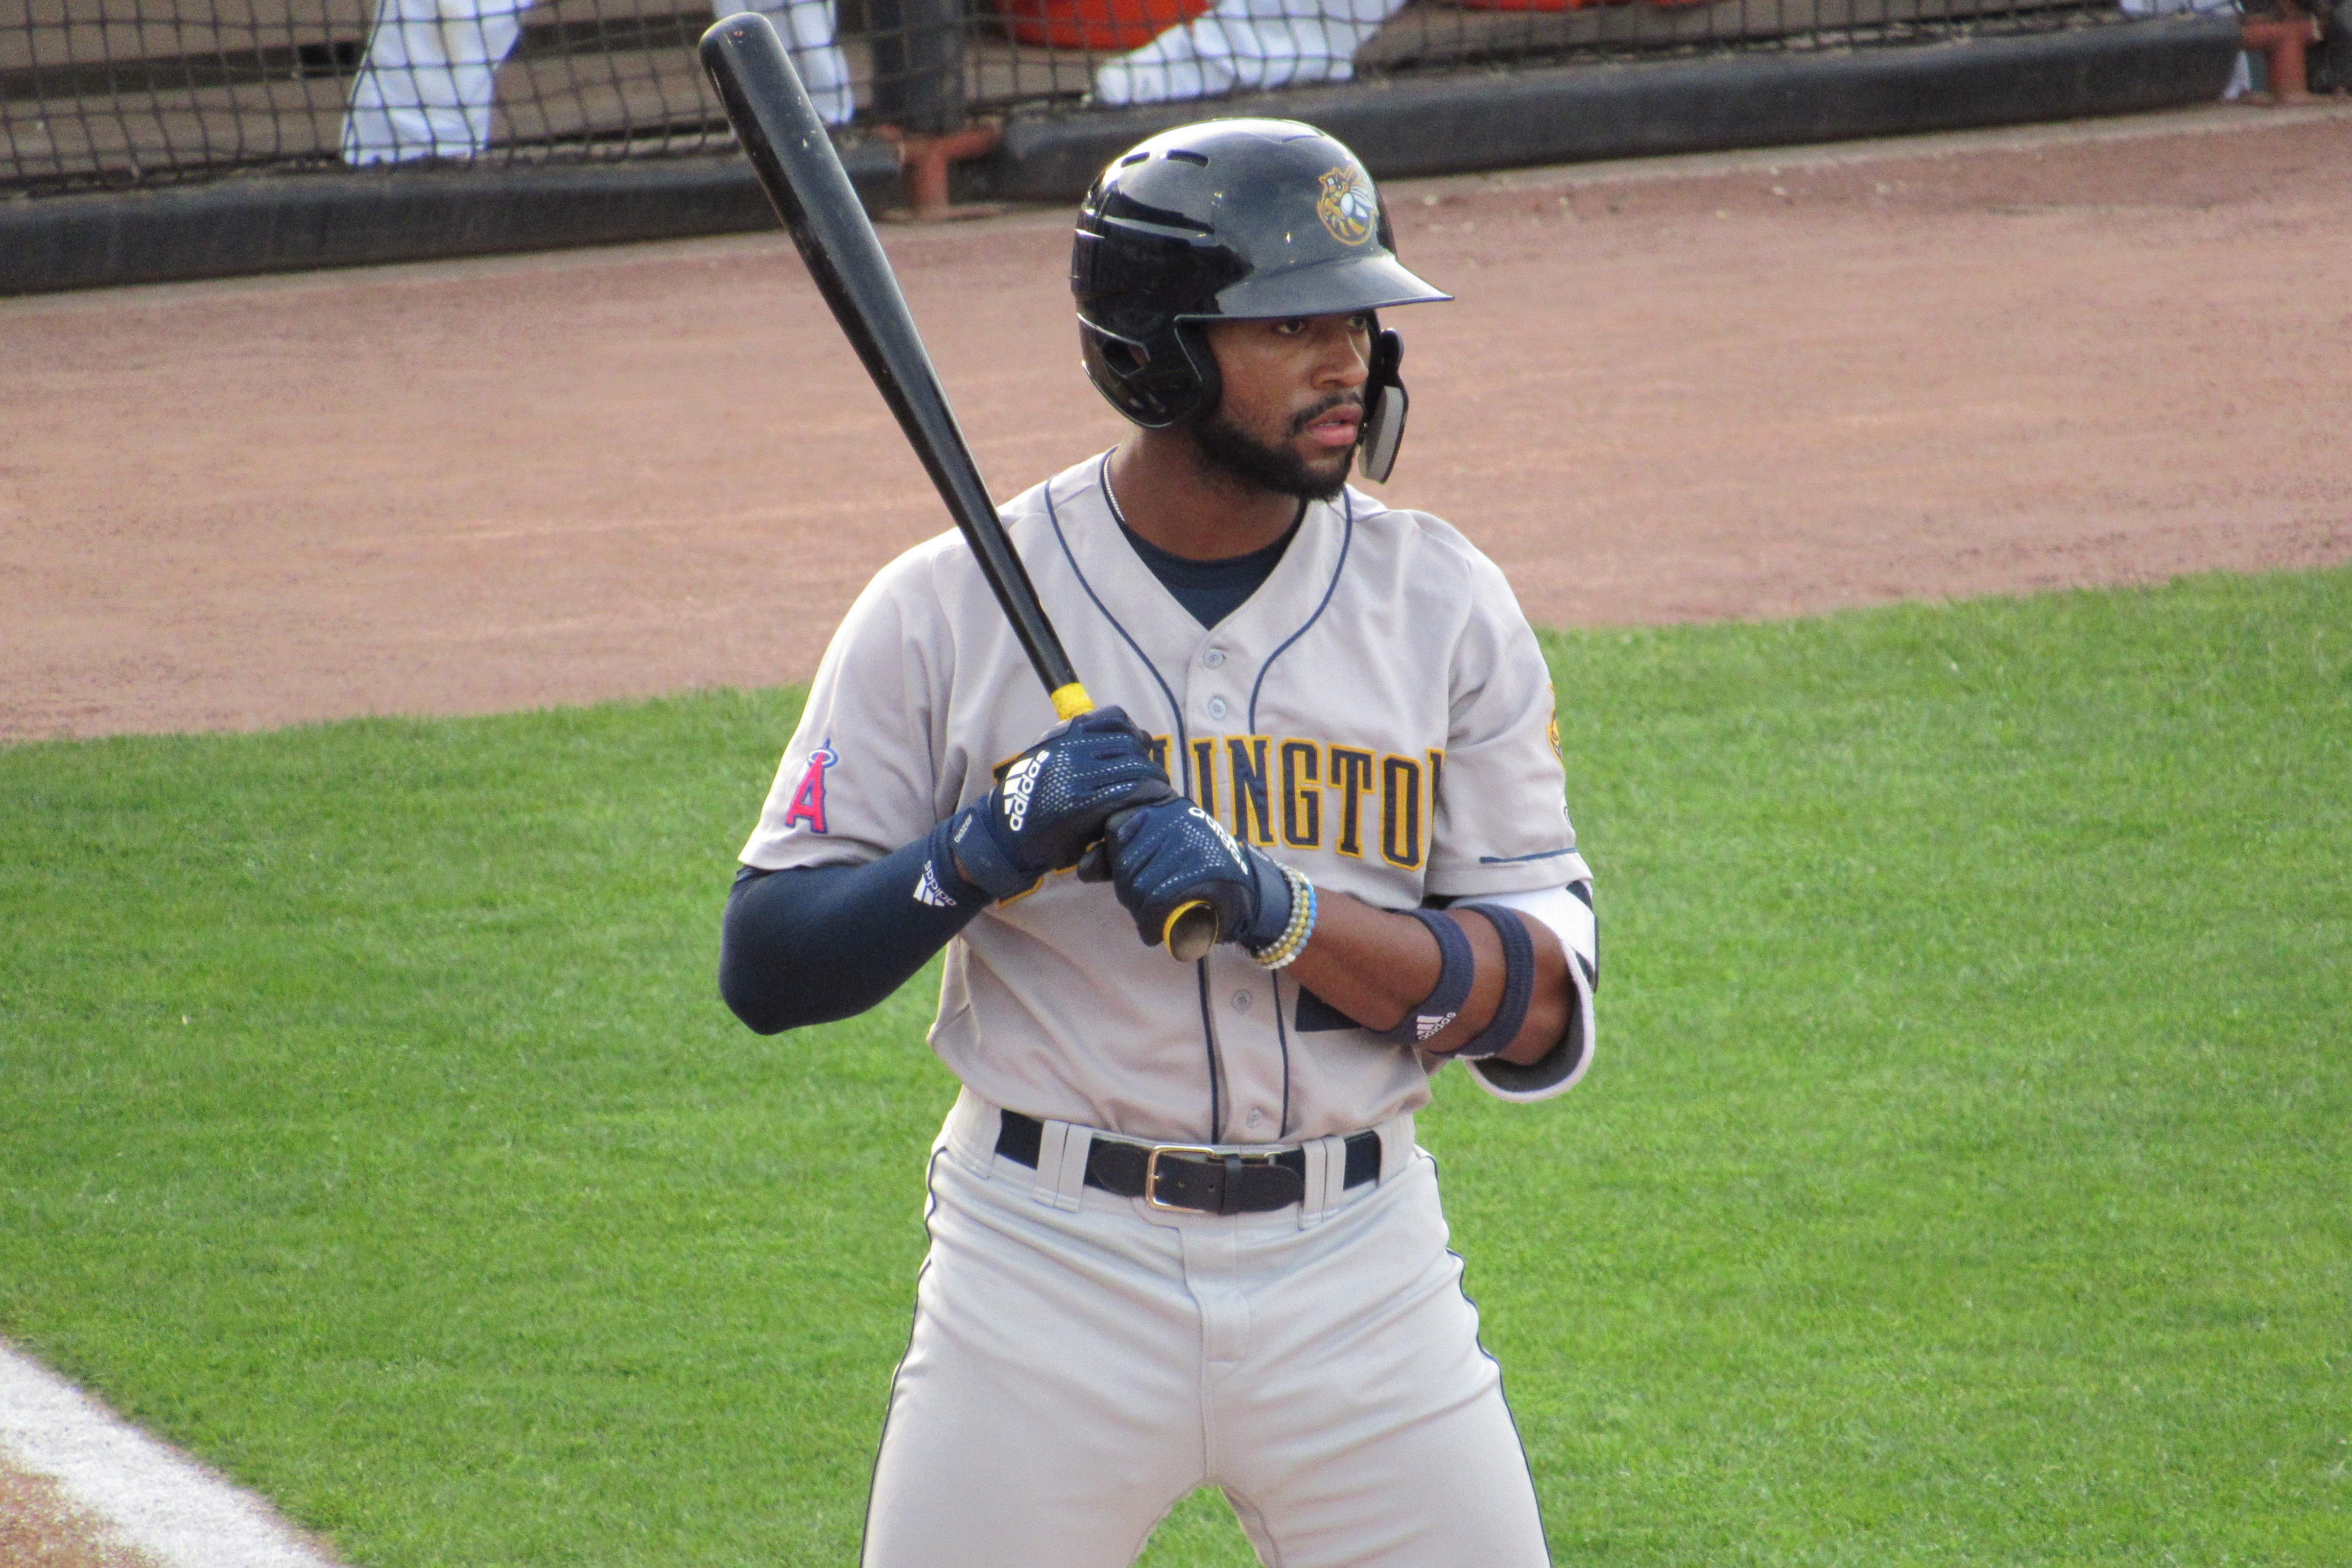 Adell homers in Bees' 3-2 win over Timber Rattlers | The